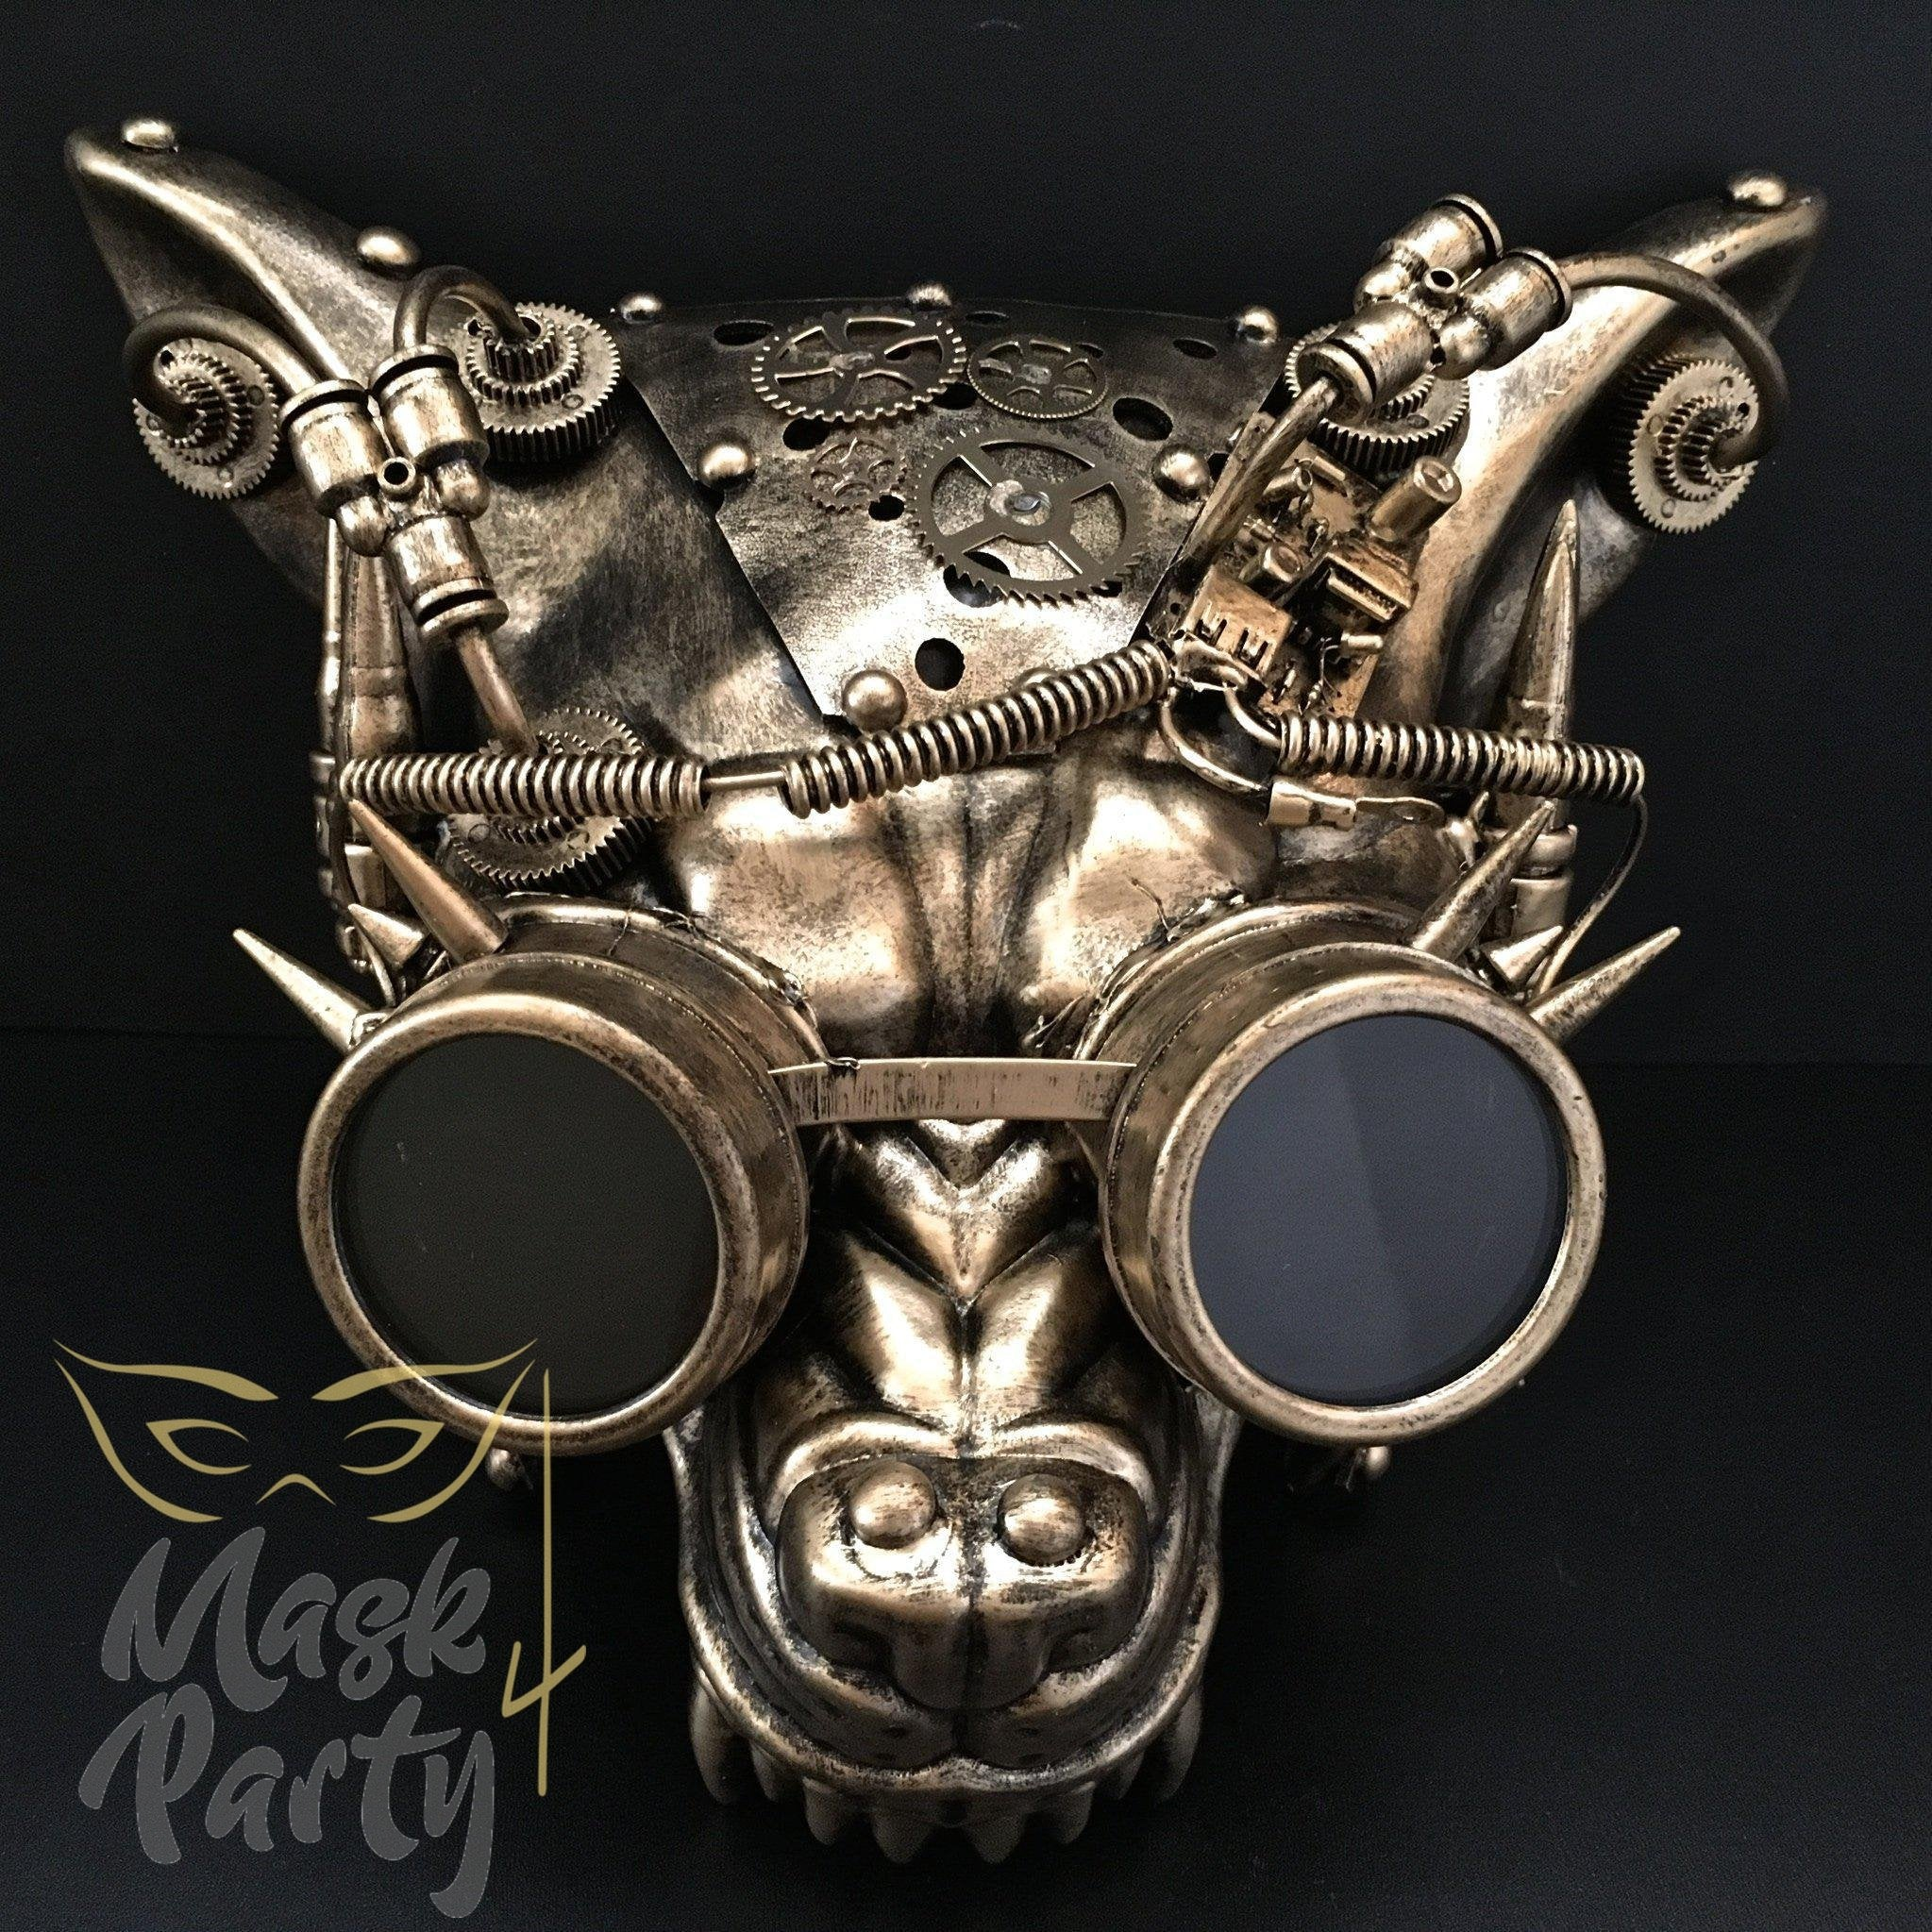 Steampunk Mask - Wolf Rivet Goggles & Gear - Black/Gold - Mask4Party